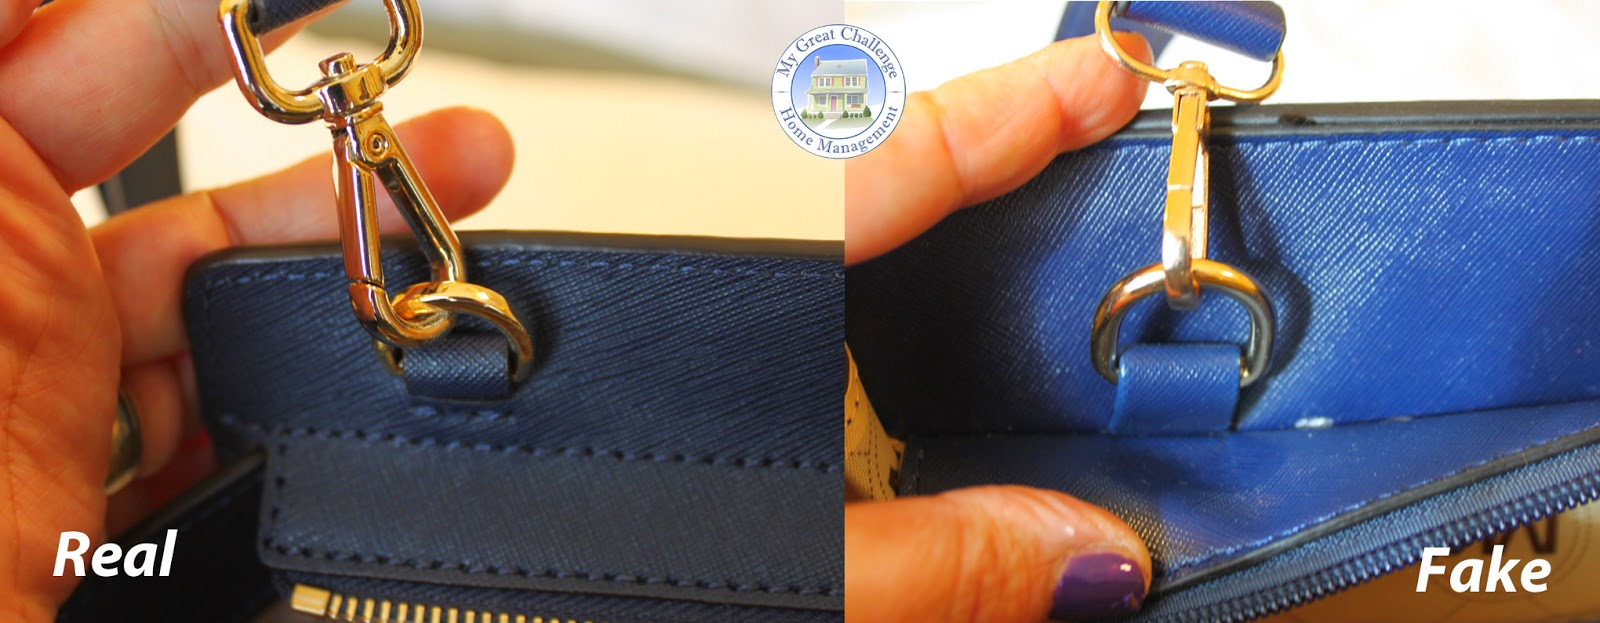 The real bag on the right has a solid clasp with a holding band that is  stitched into the side while the fake version has a band stitched into the  seam and ... 7c3e69b5af394